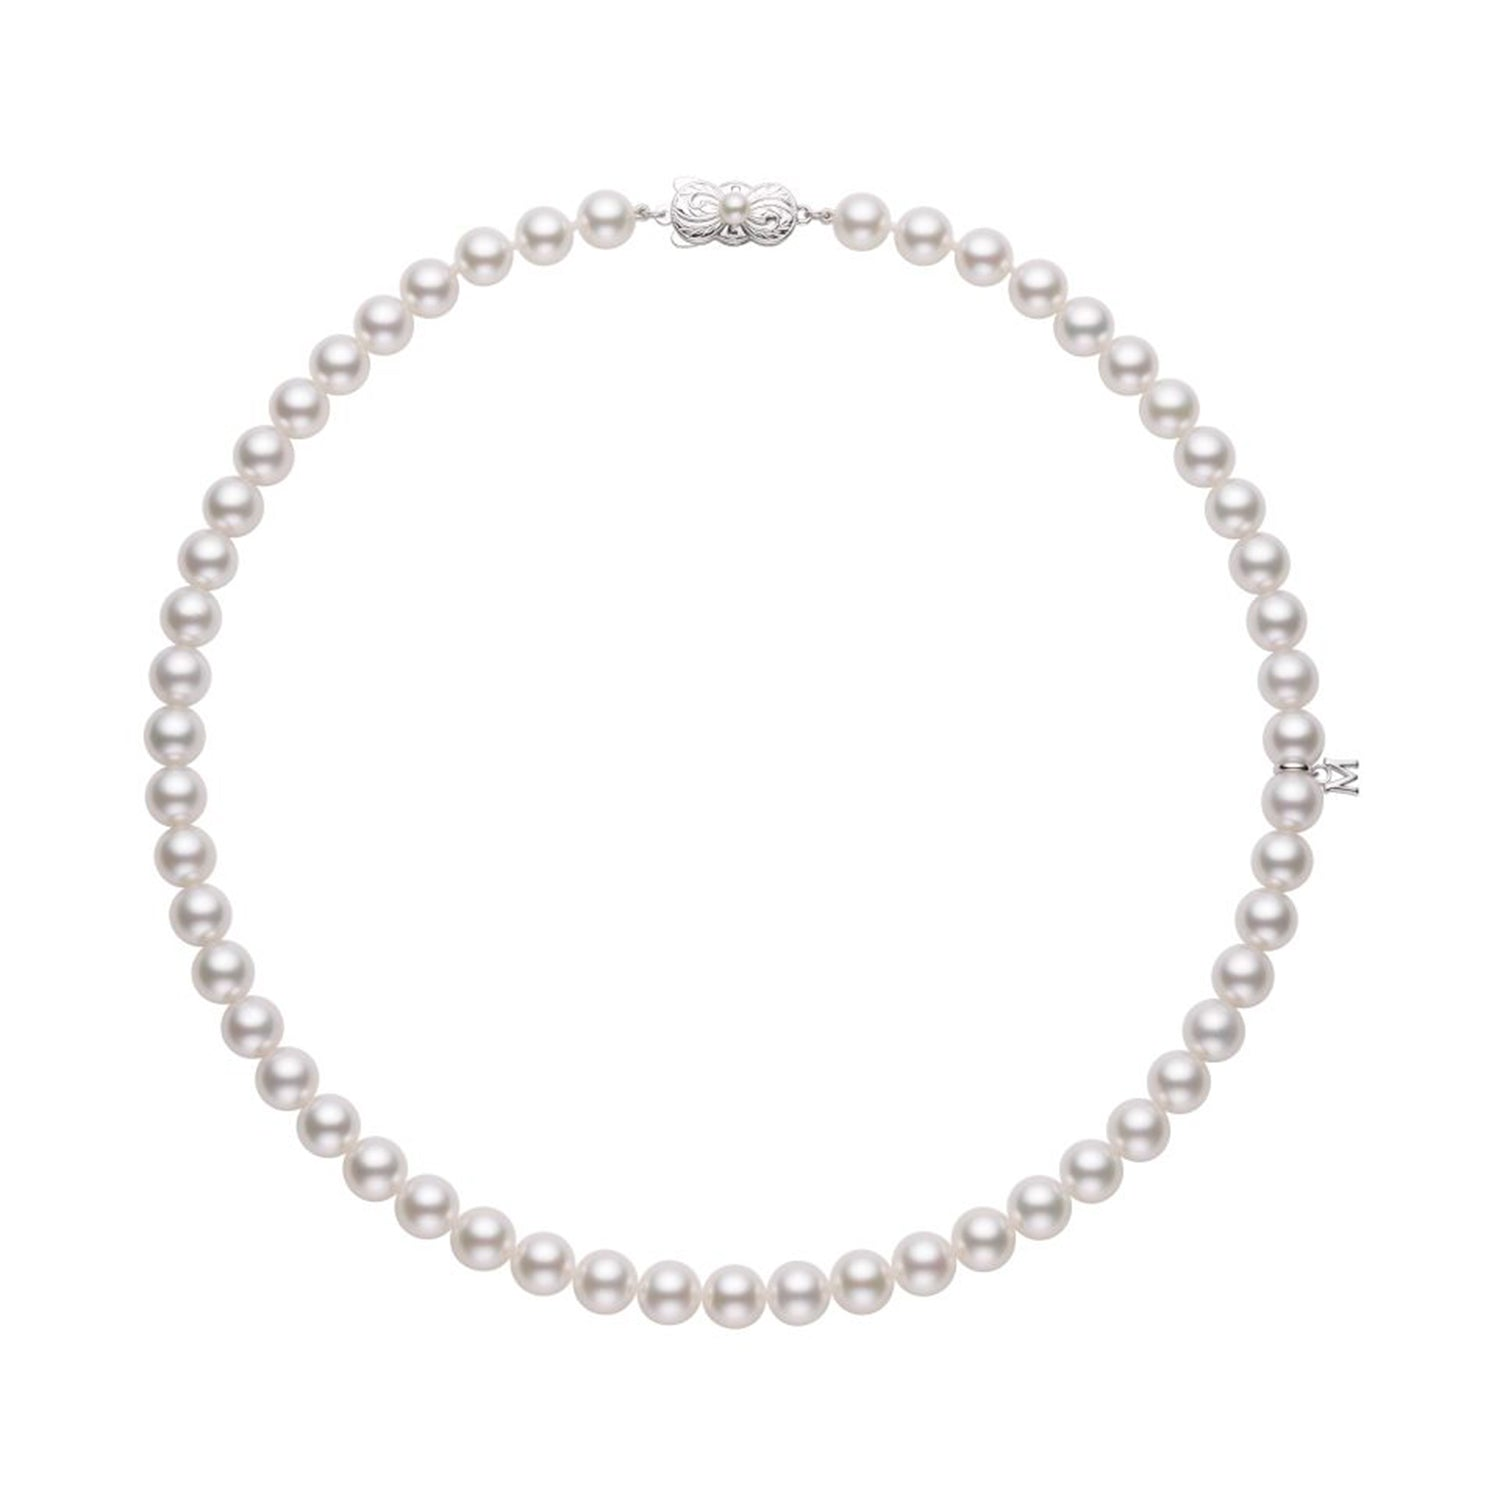 MIKIMOTO PREMIUM Akoya Cultured Pearl Necklace